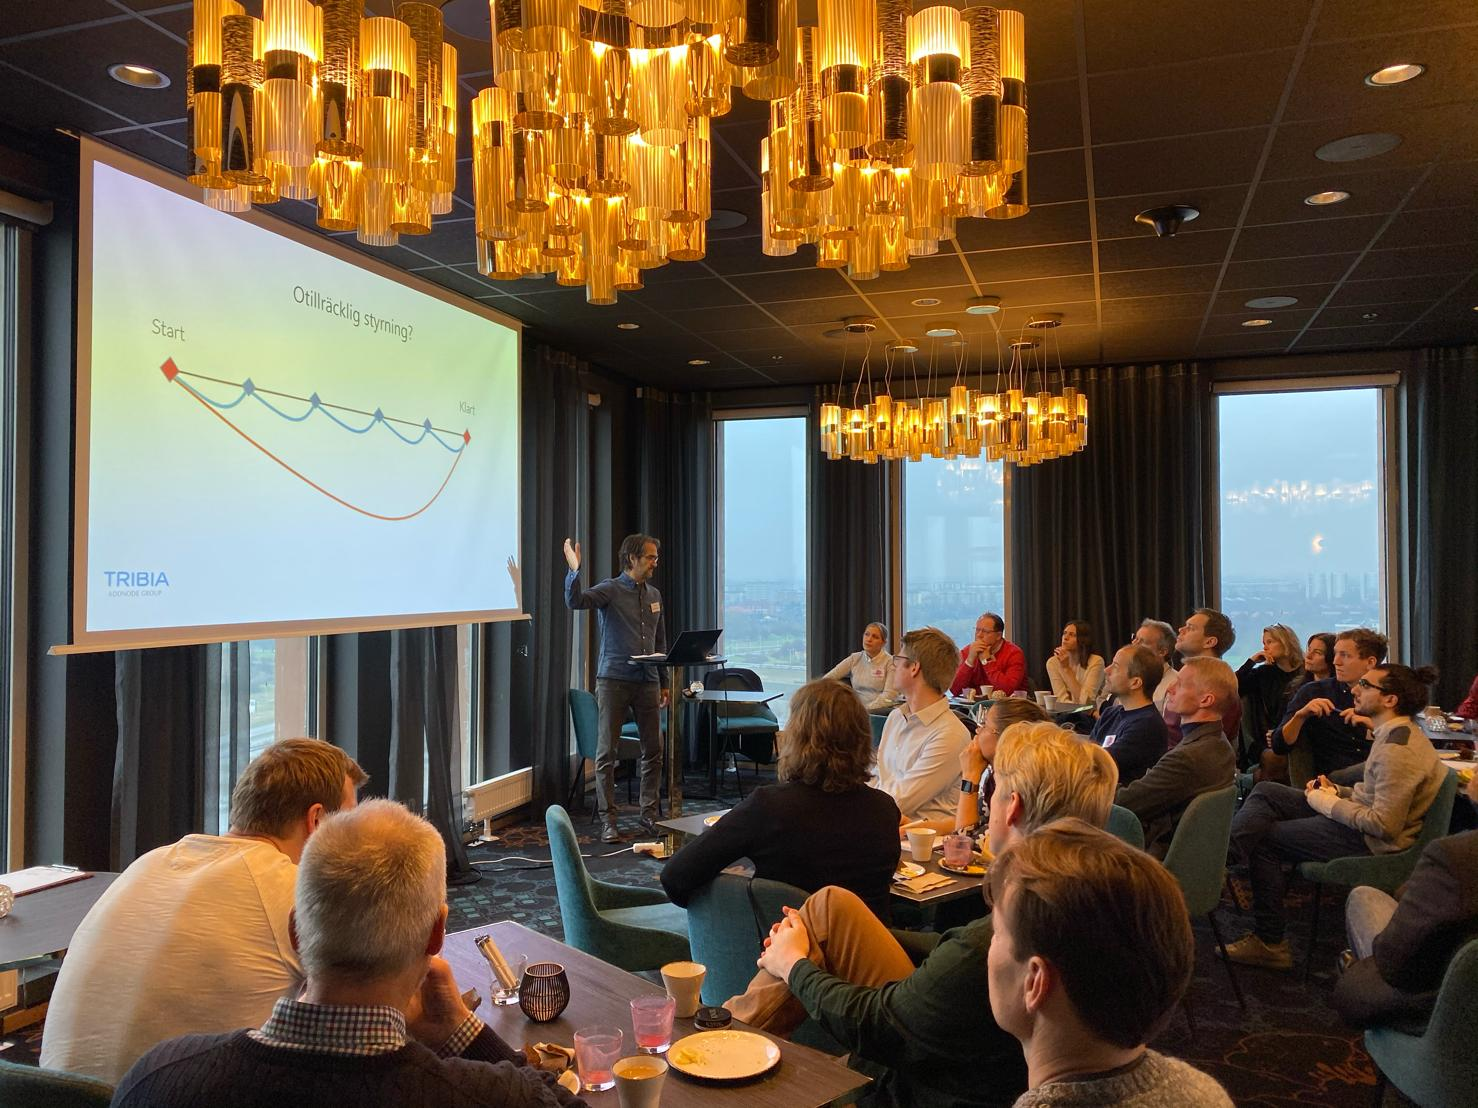 4/2 - Breakfast Seminar in Gothenburg - Efficient meetings in construction projects!